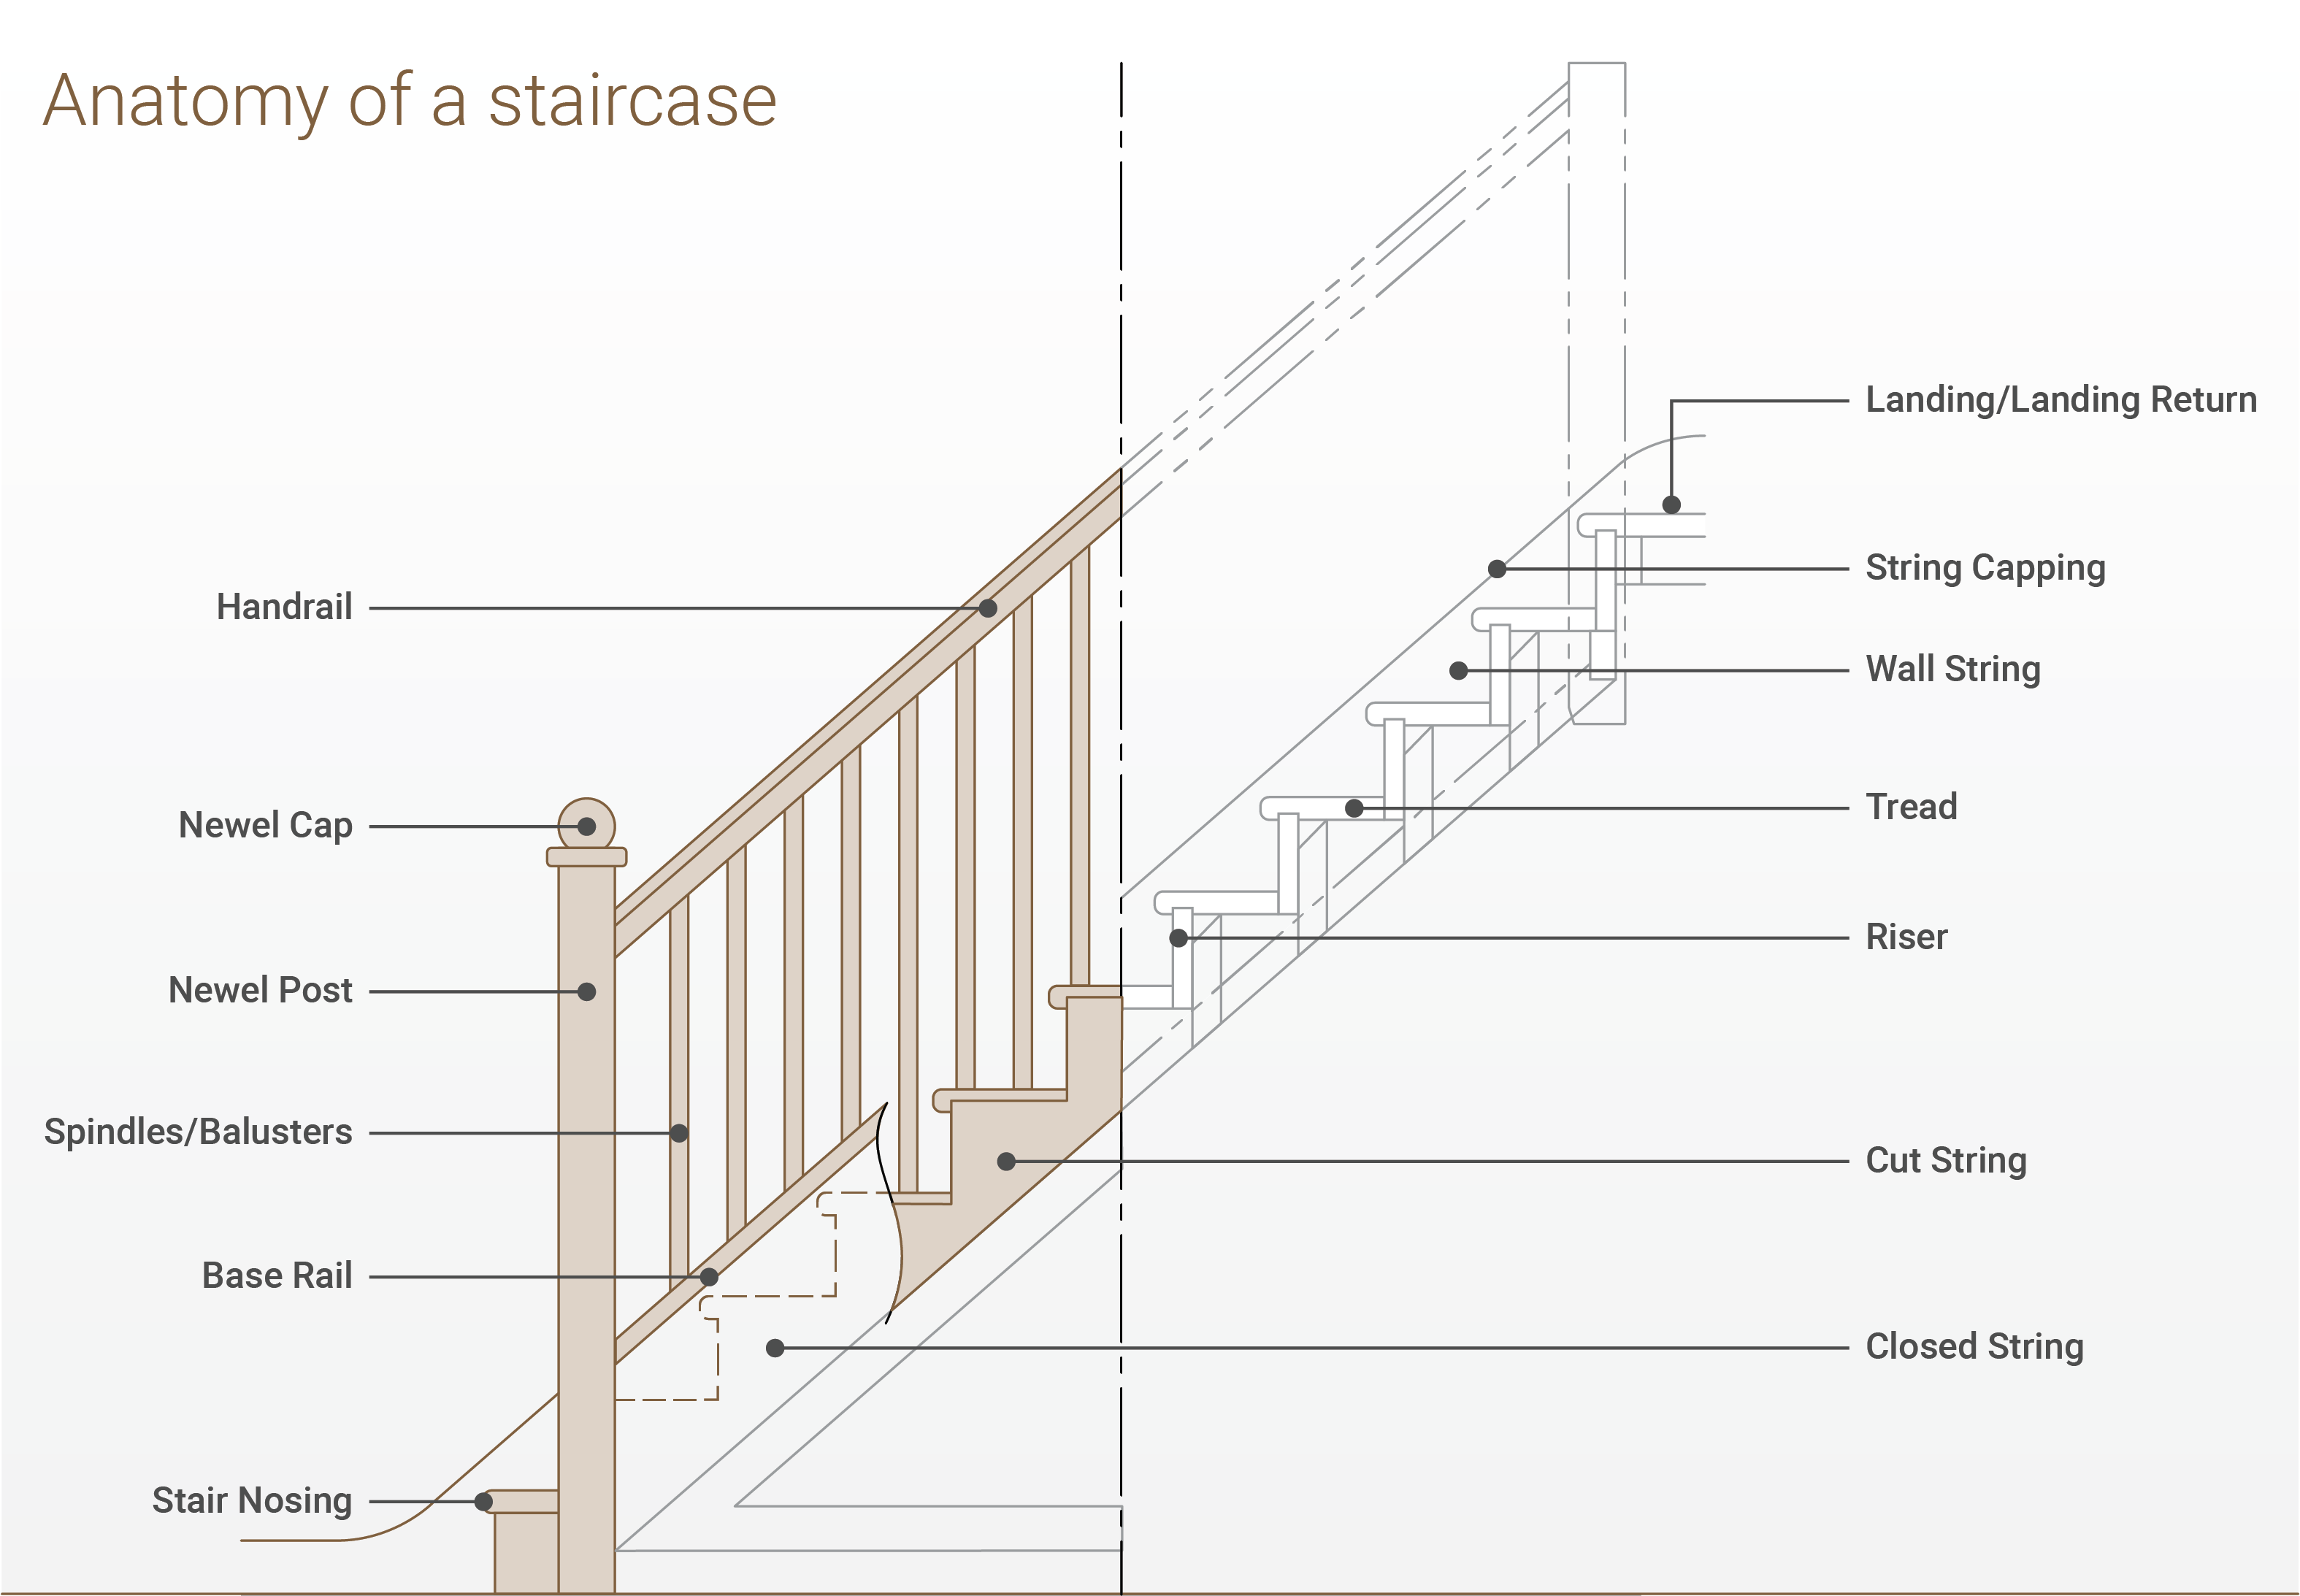 sj-diagram-staircase-terminology.png